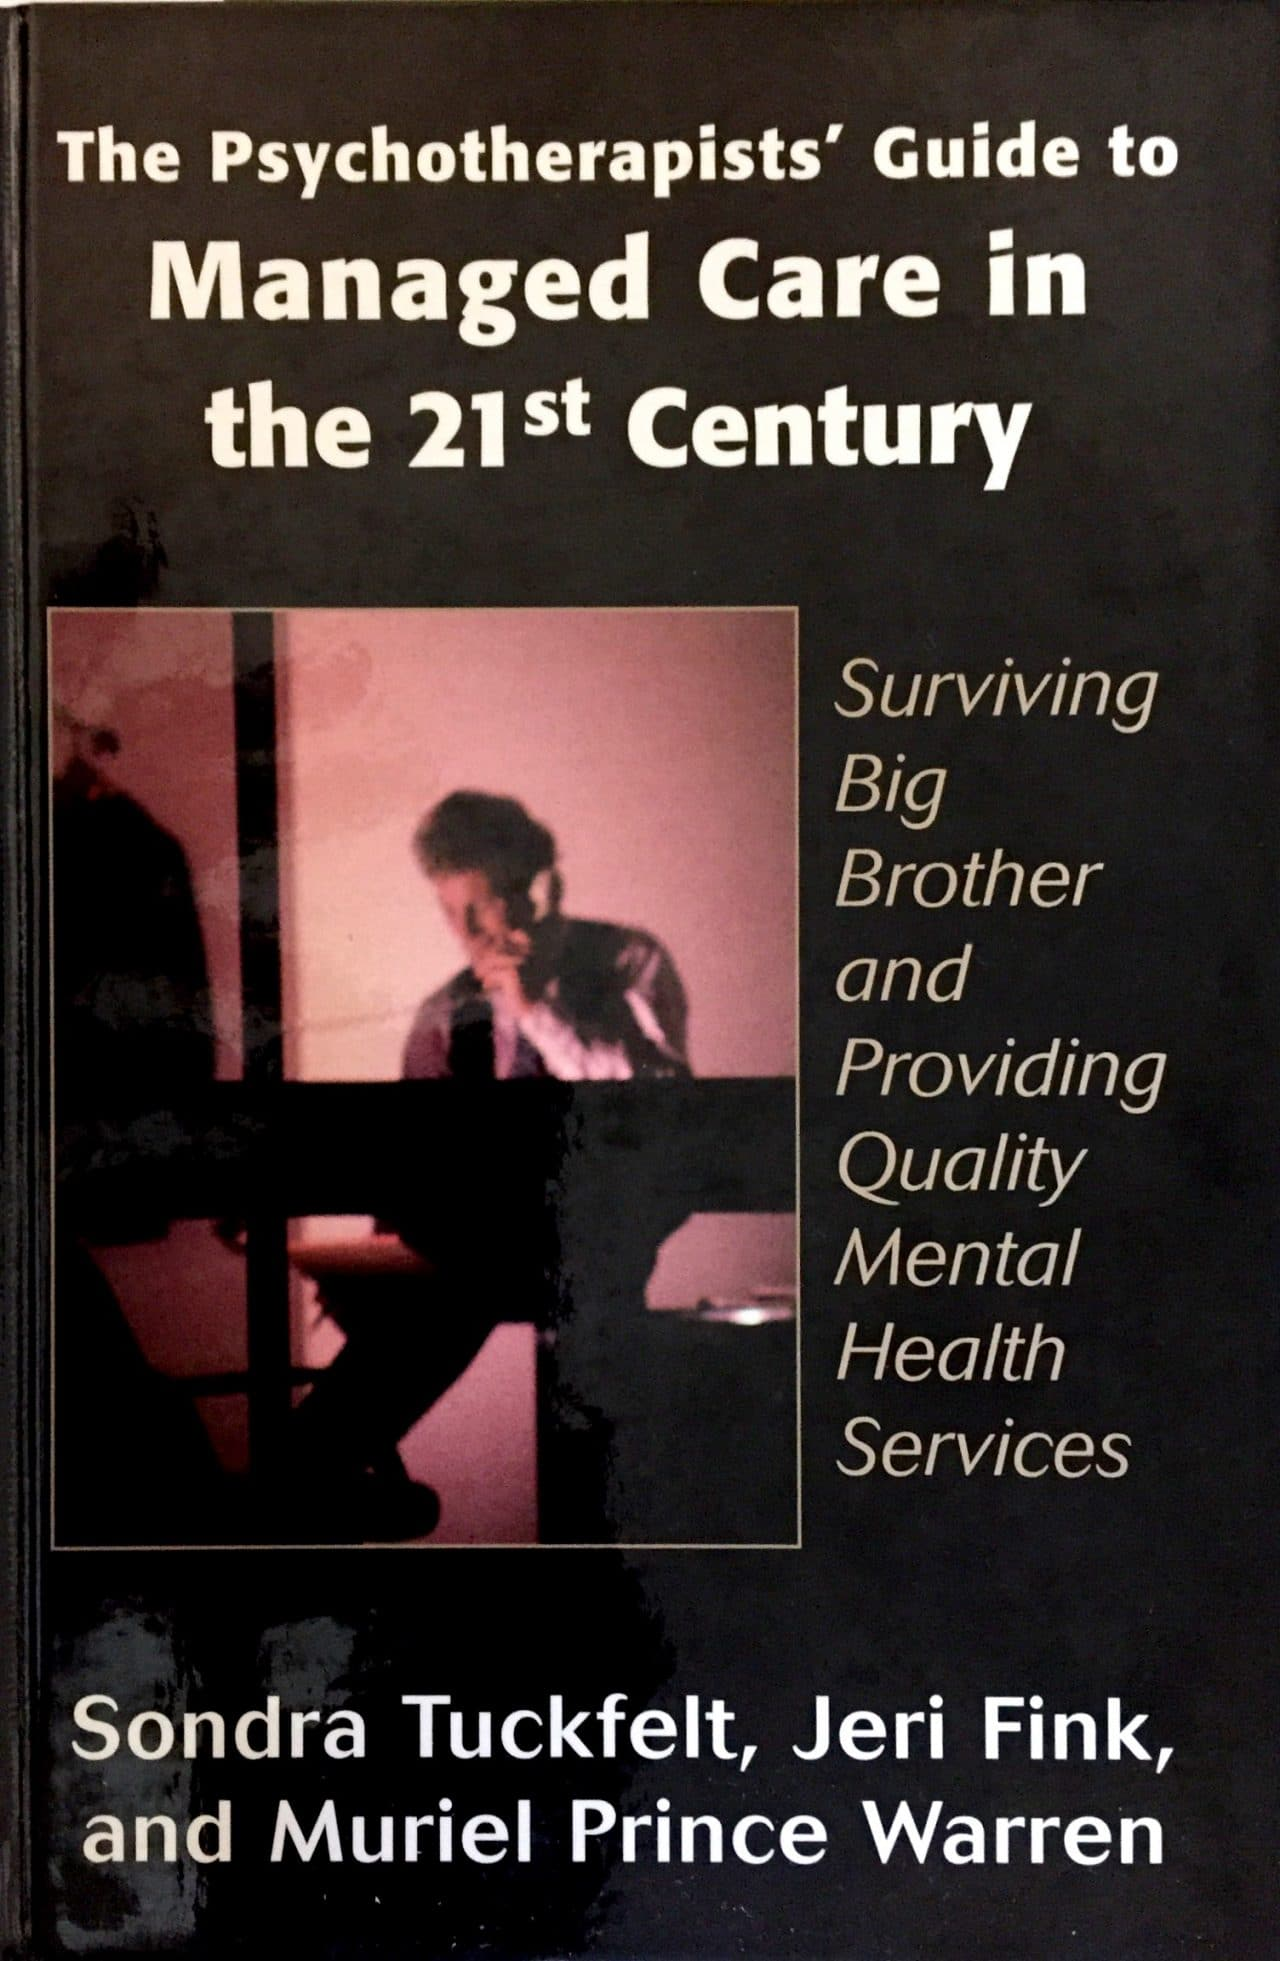 The Psychoterapists' Guide To Managed Care In The 21st Century